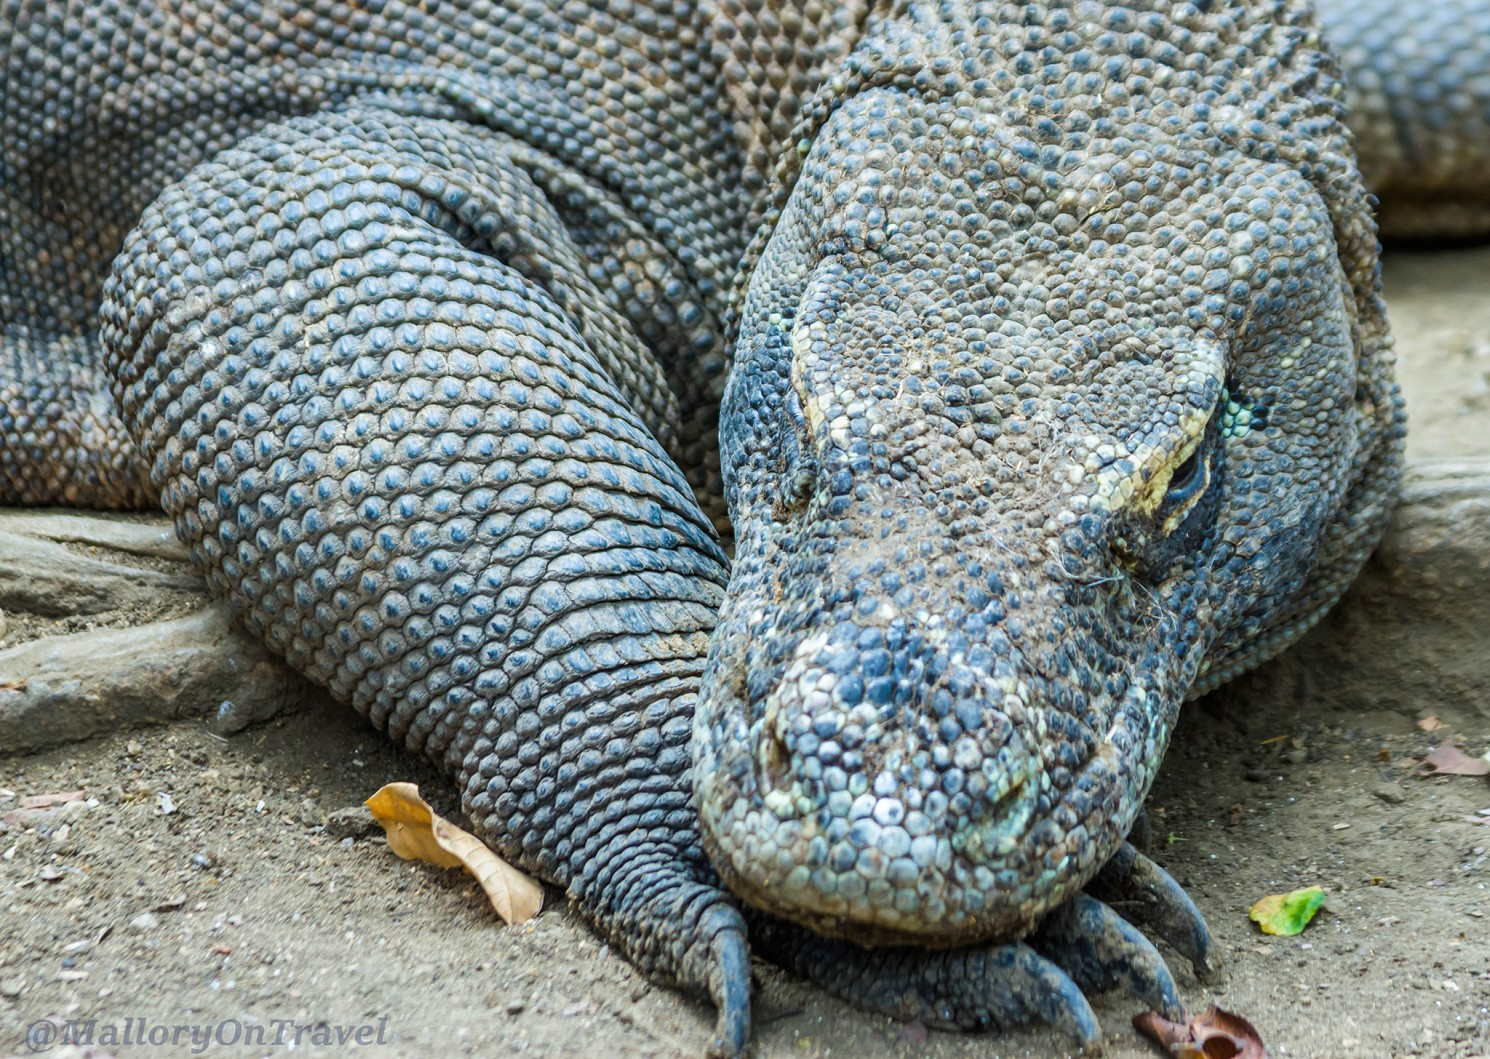 komodo dragon research paper Essays - largest database of quality sample essays and research papers on komodo dragons.